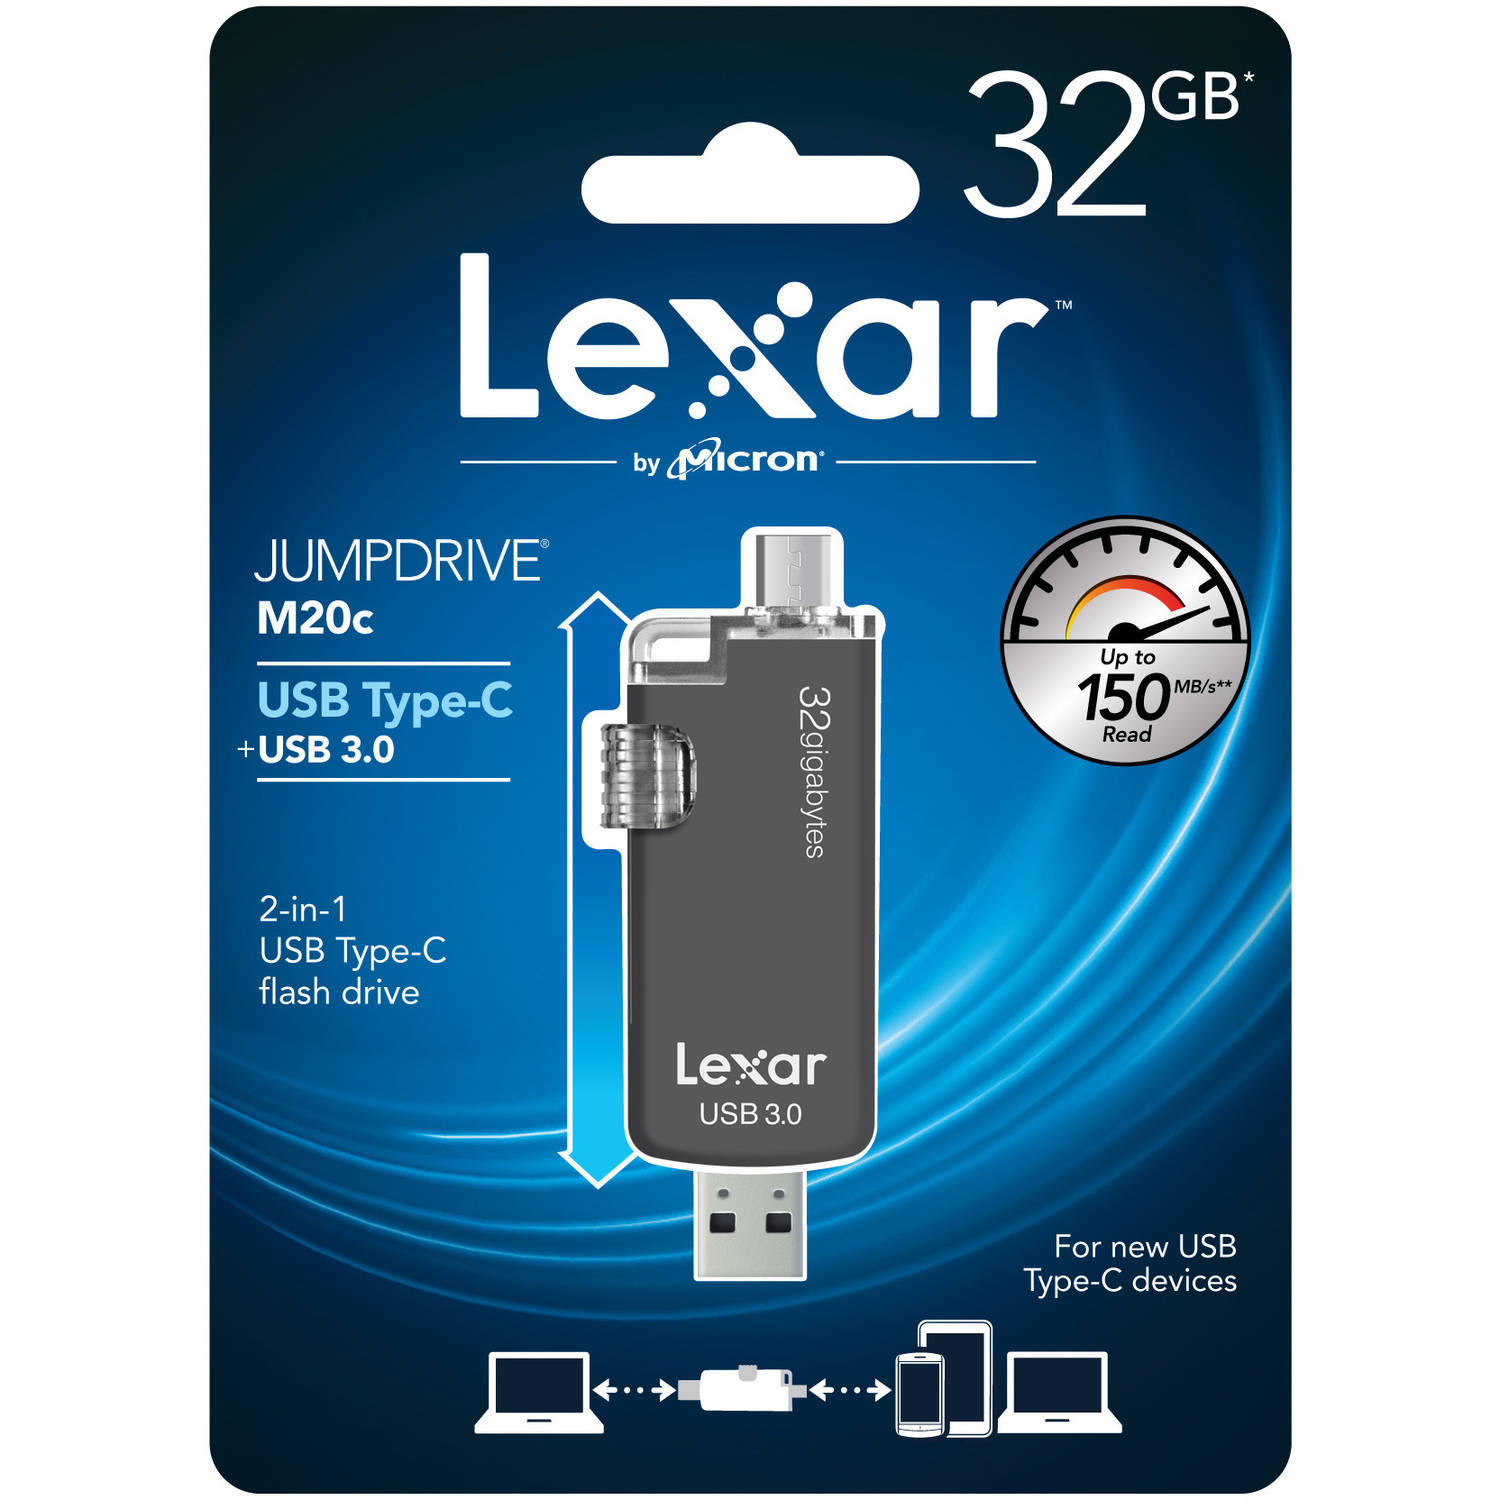 Lexar M20c 32GB JumpDrive USB Type-C Flash Drive